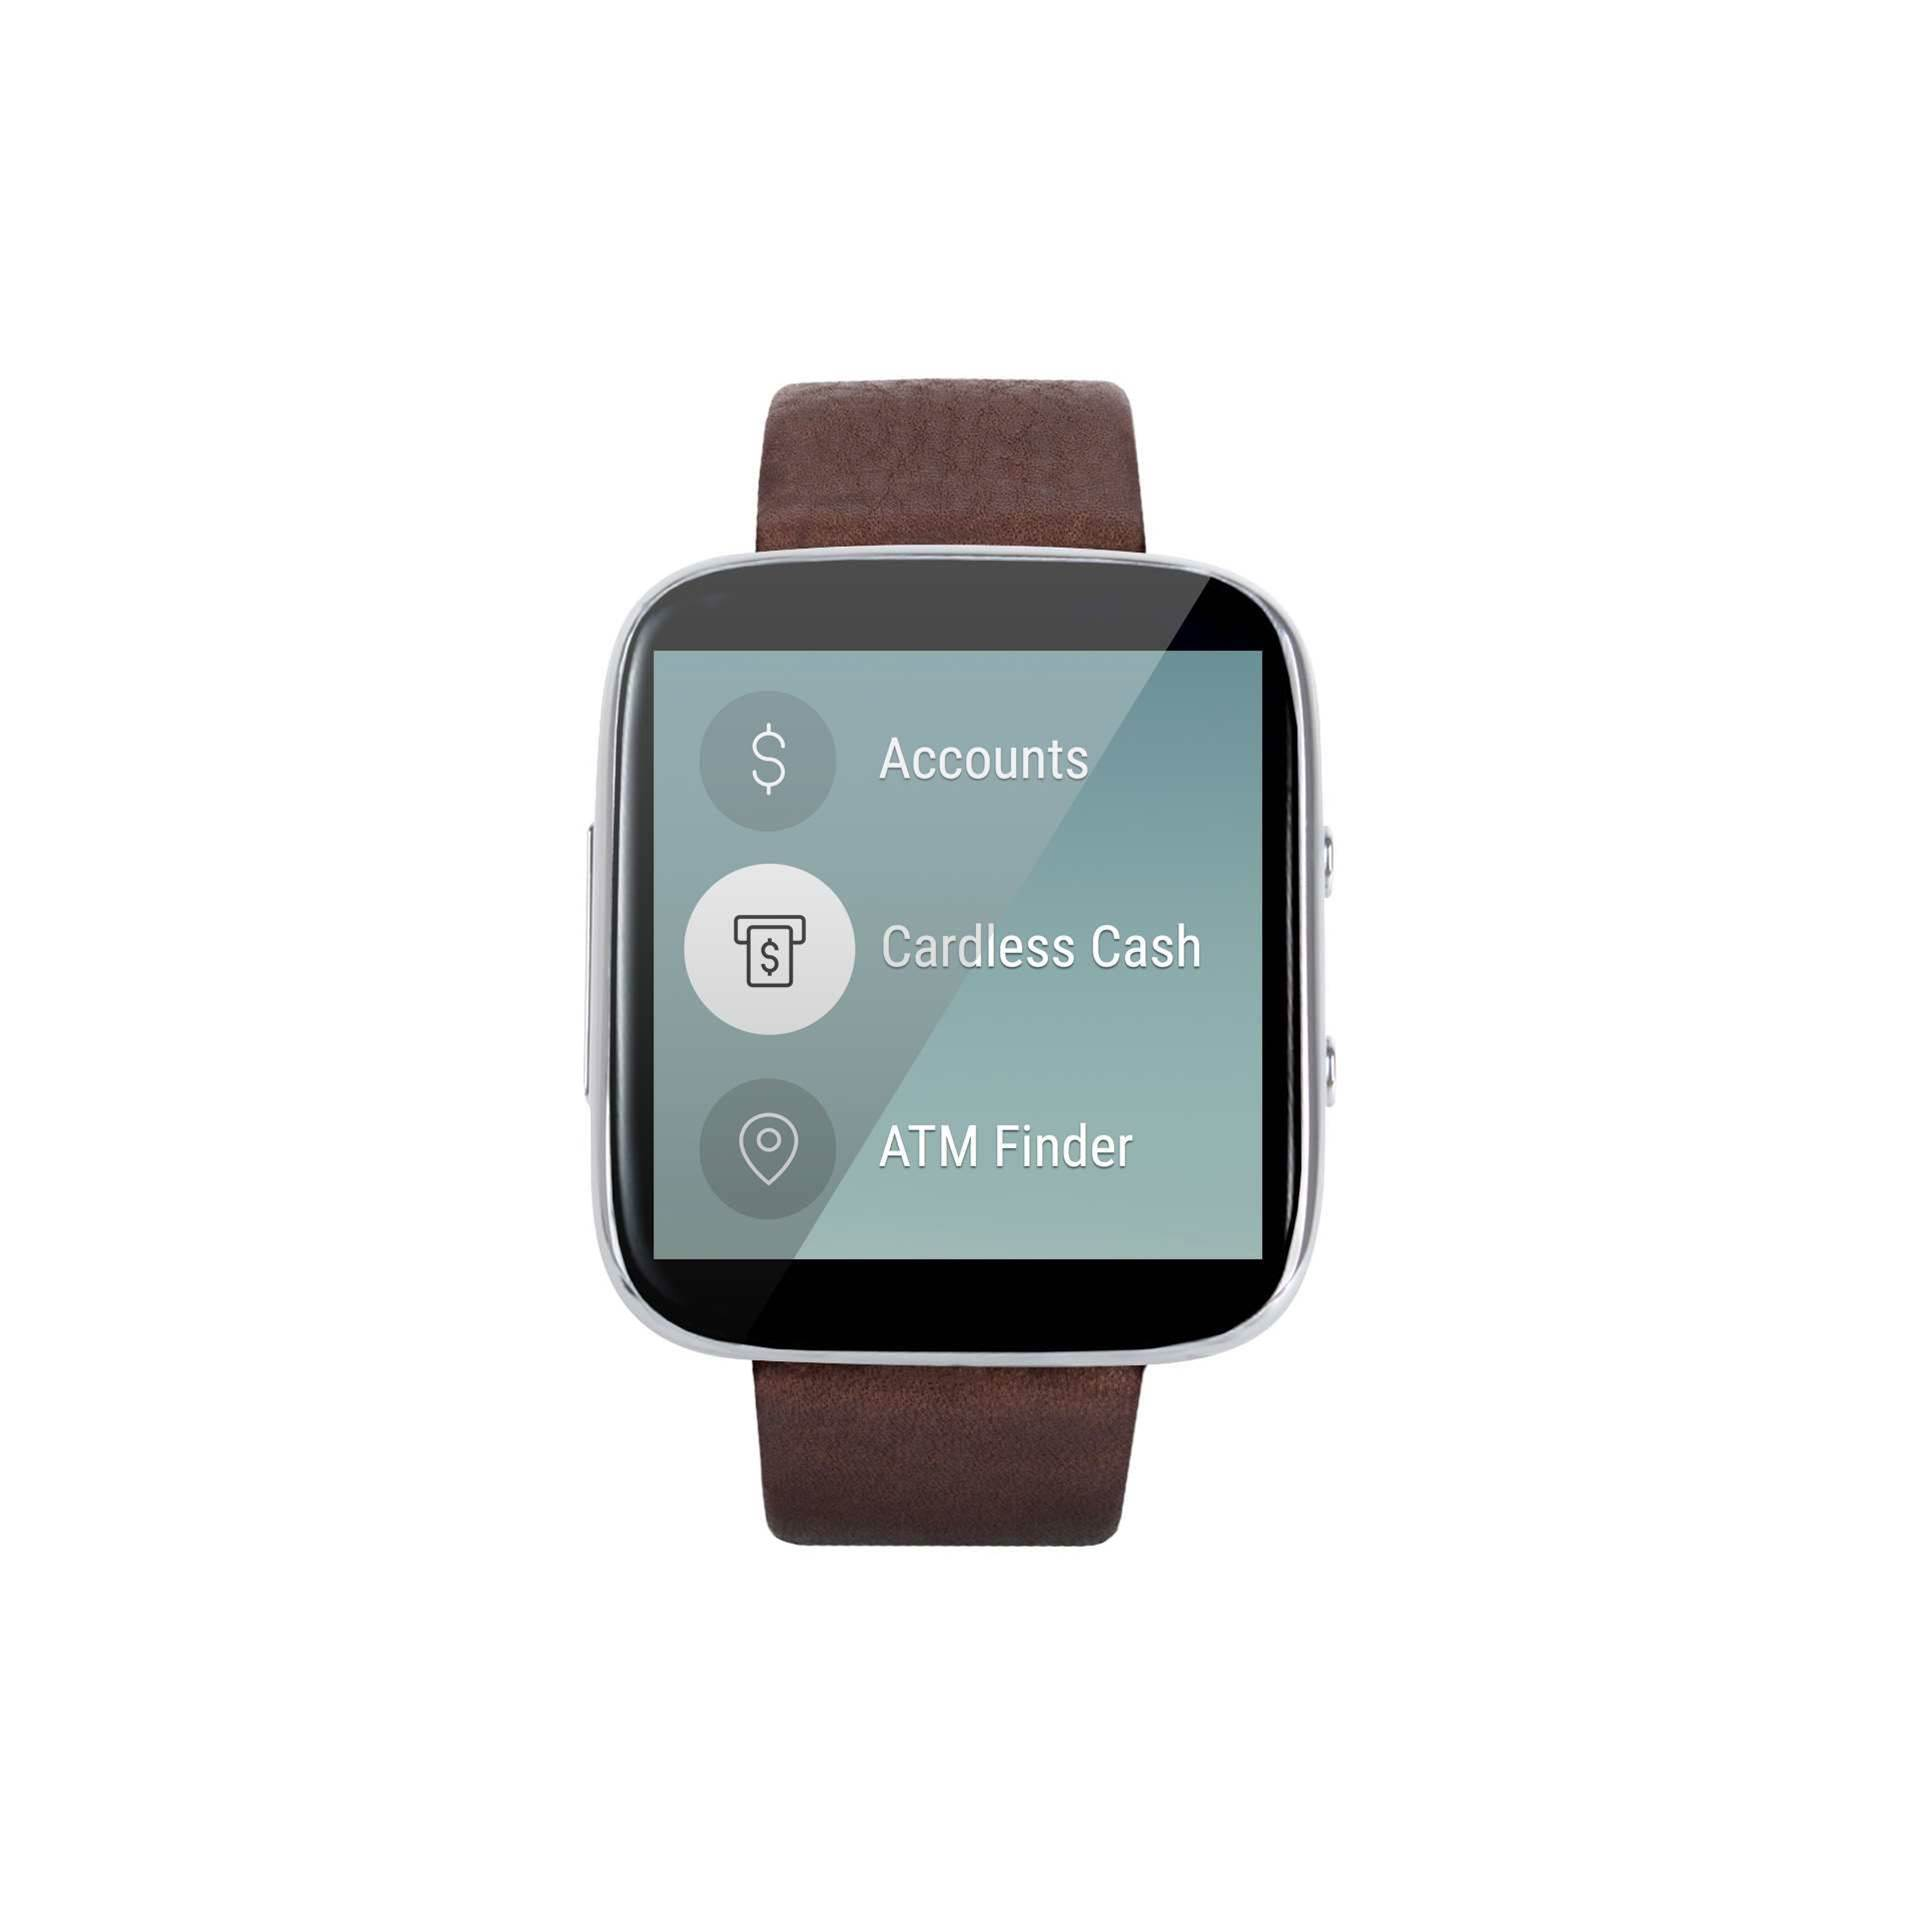 Australia's banks race to be first with watch apps